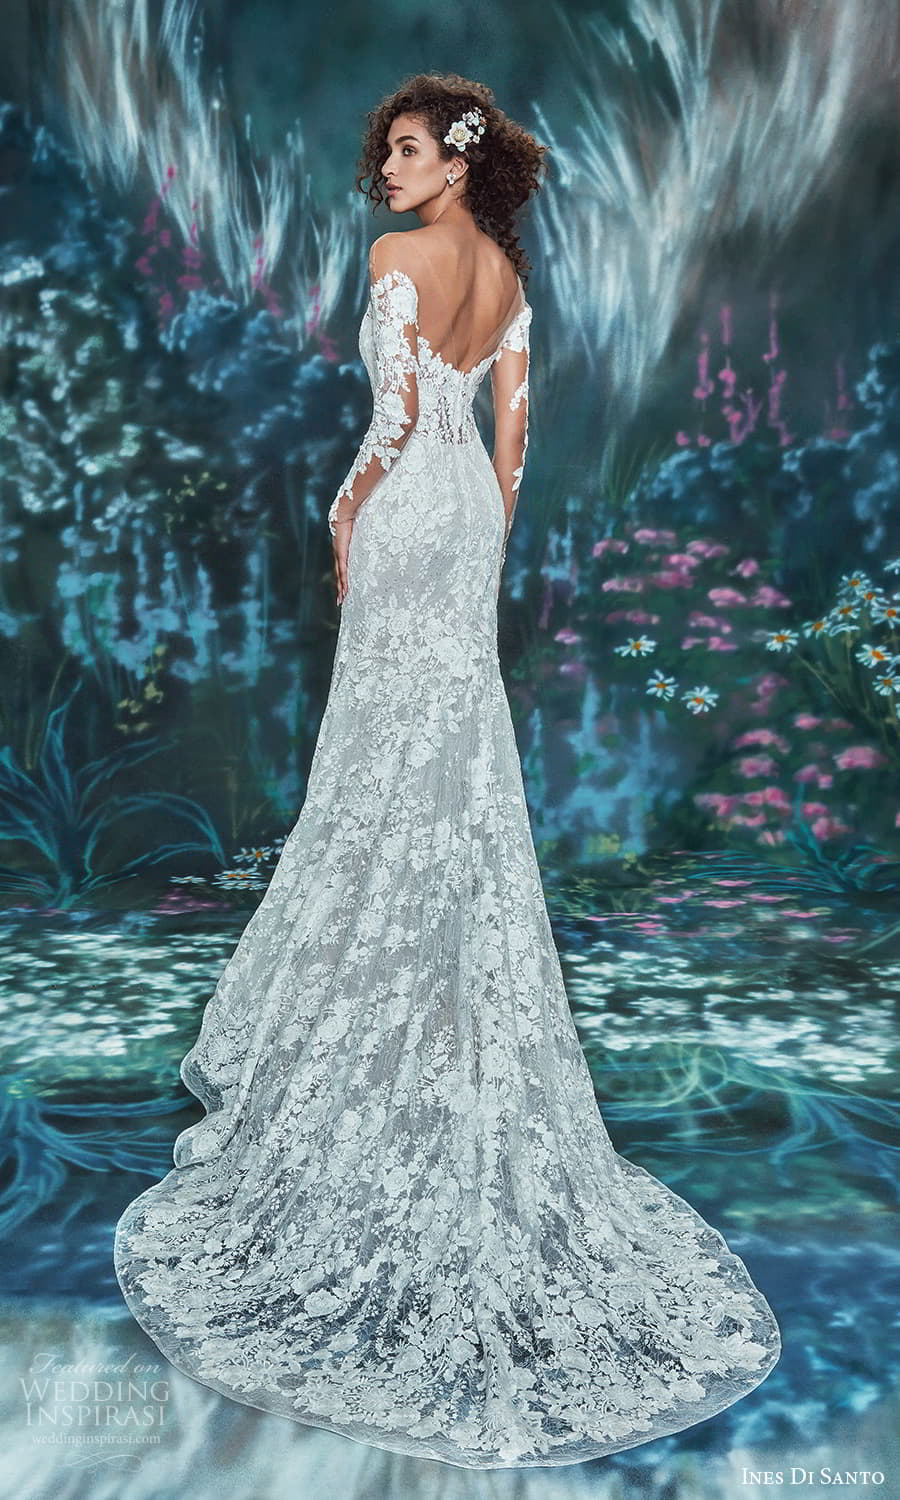 ines di santo spring 2022 bridal sheer long sleeves semi sweetheart neckline fully embellishe fit flare mermaid wedding dress chapel train (2) bv